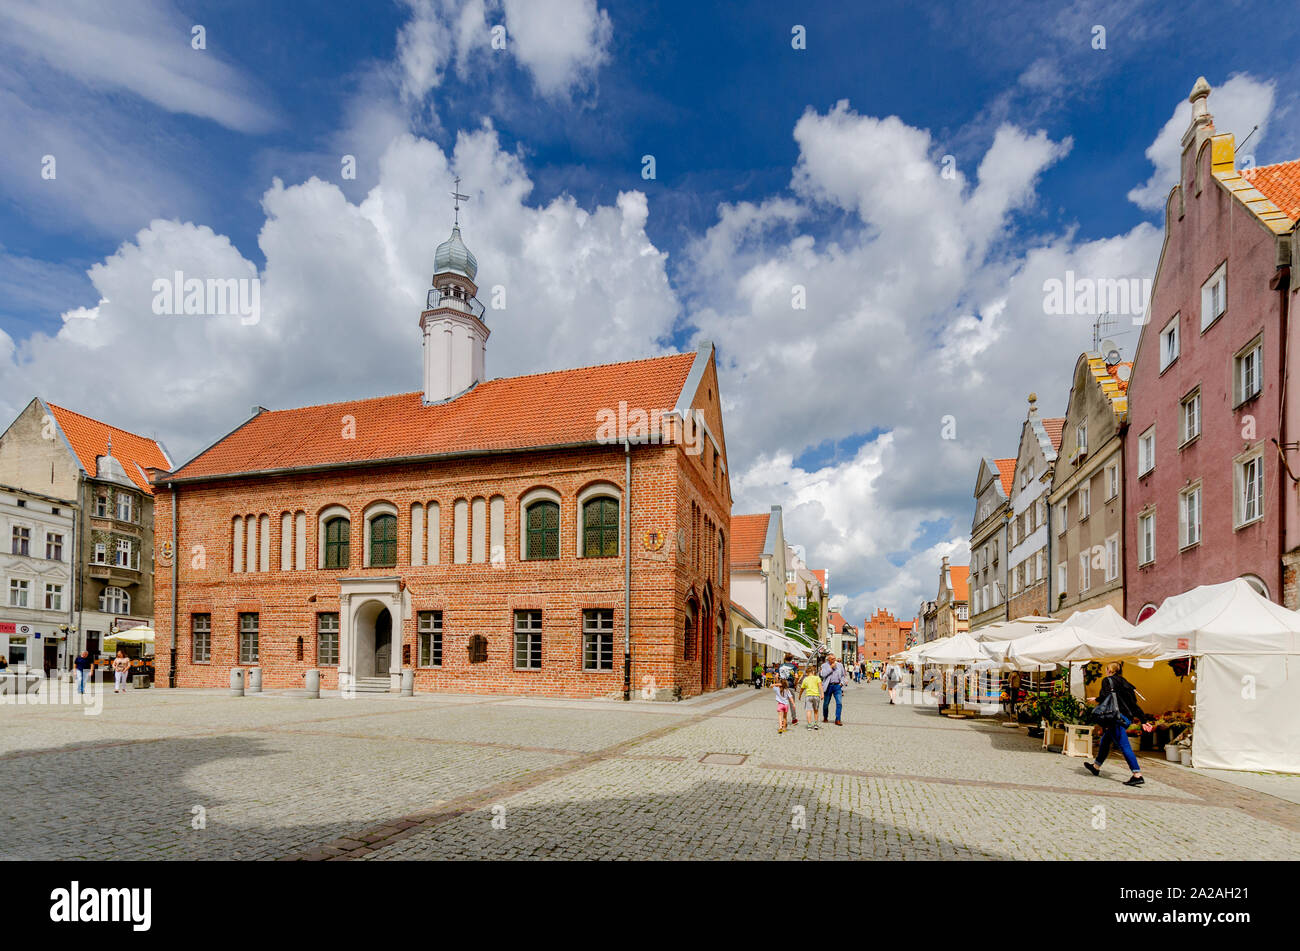 Olsztyn (ger.: Allenstein), Warmian-mazurian province, Poland. The old townhall on the Old Town Marketplace Stock Photo